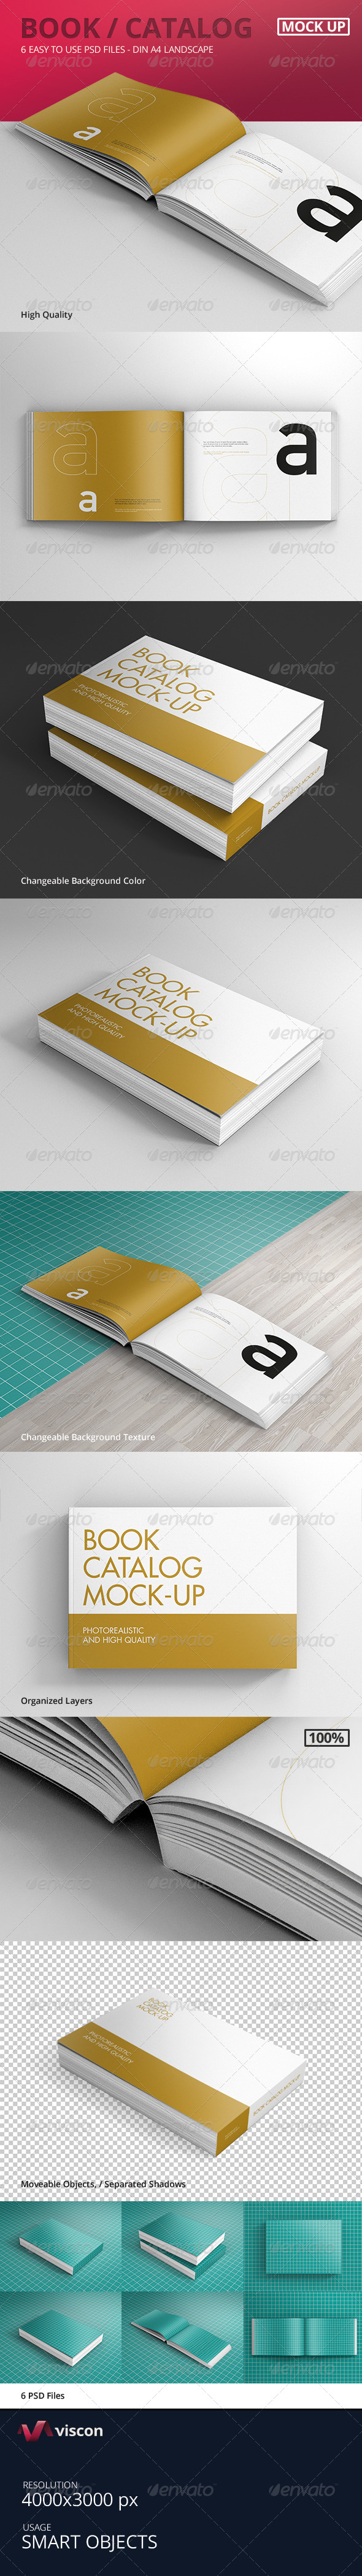 Book Catalog Mock-Ups Landscape